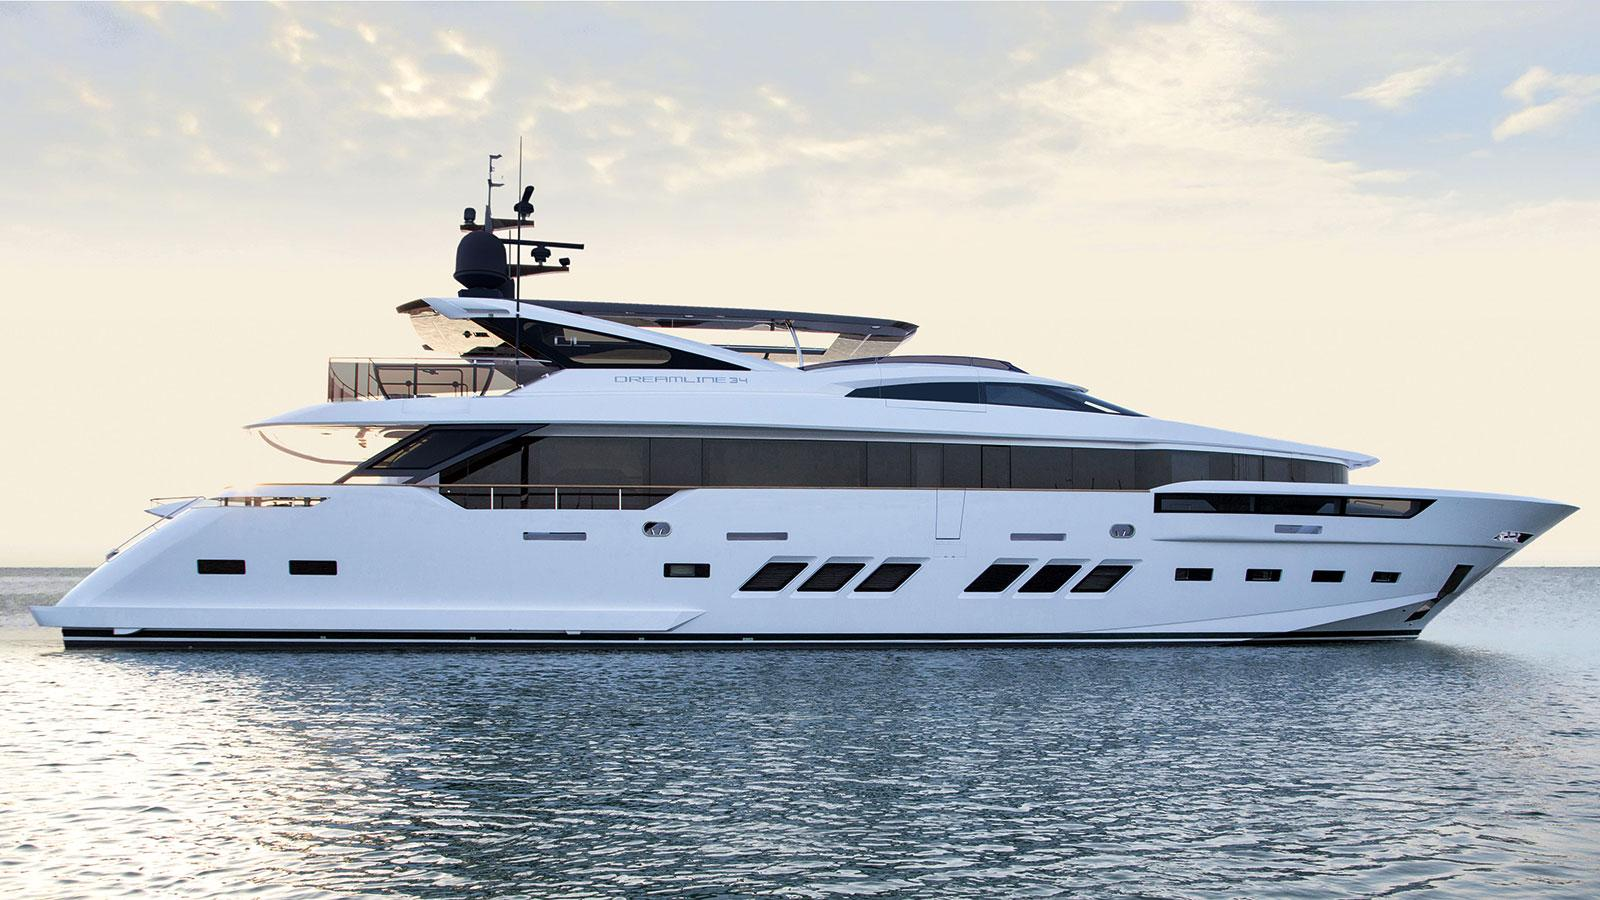 DREAMLINE YACHTS 34 METRES SY PRESTIGE YACHTS CANNES ST TROPEZ MONACO FRANCE